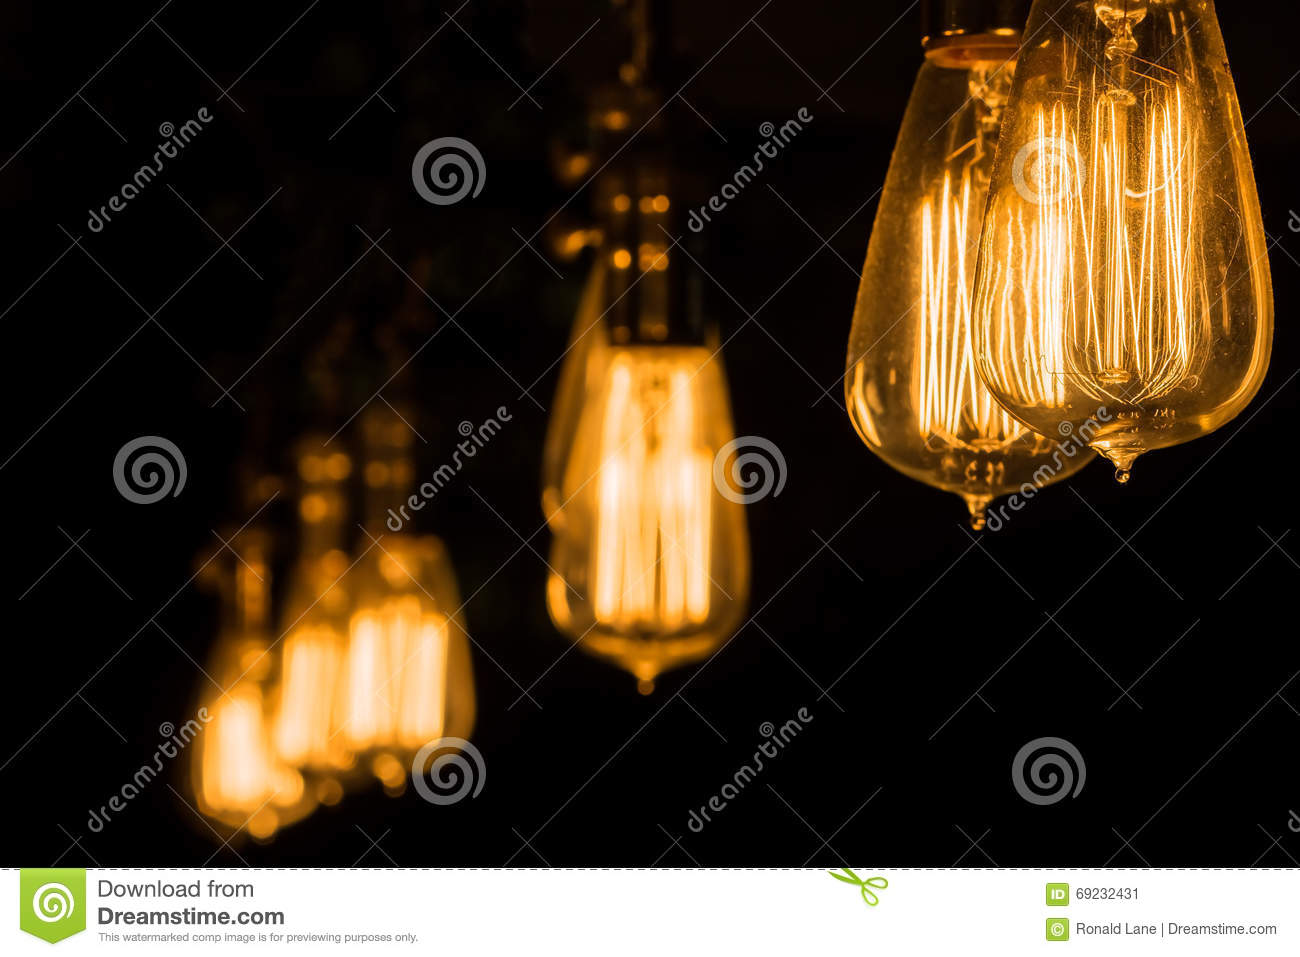 Vintage Edison Light Bulbs Hanging Against A Black Background Stock Image Image Of Closeup